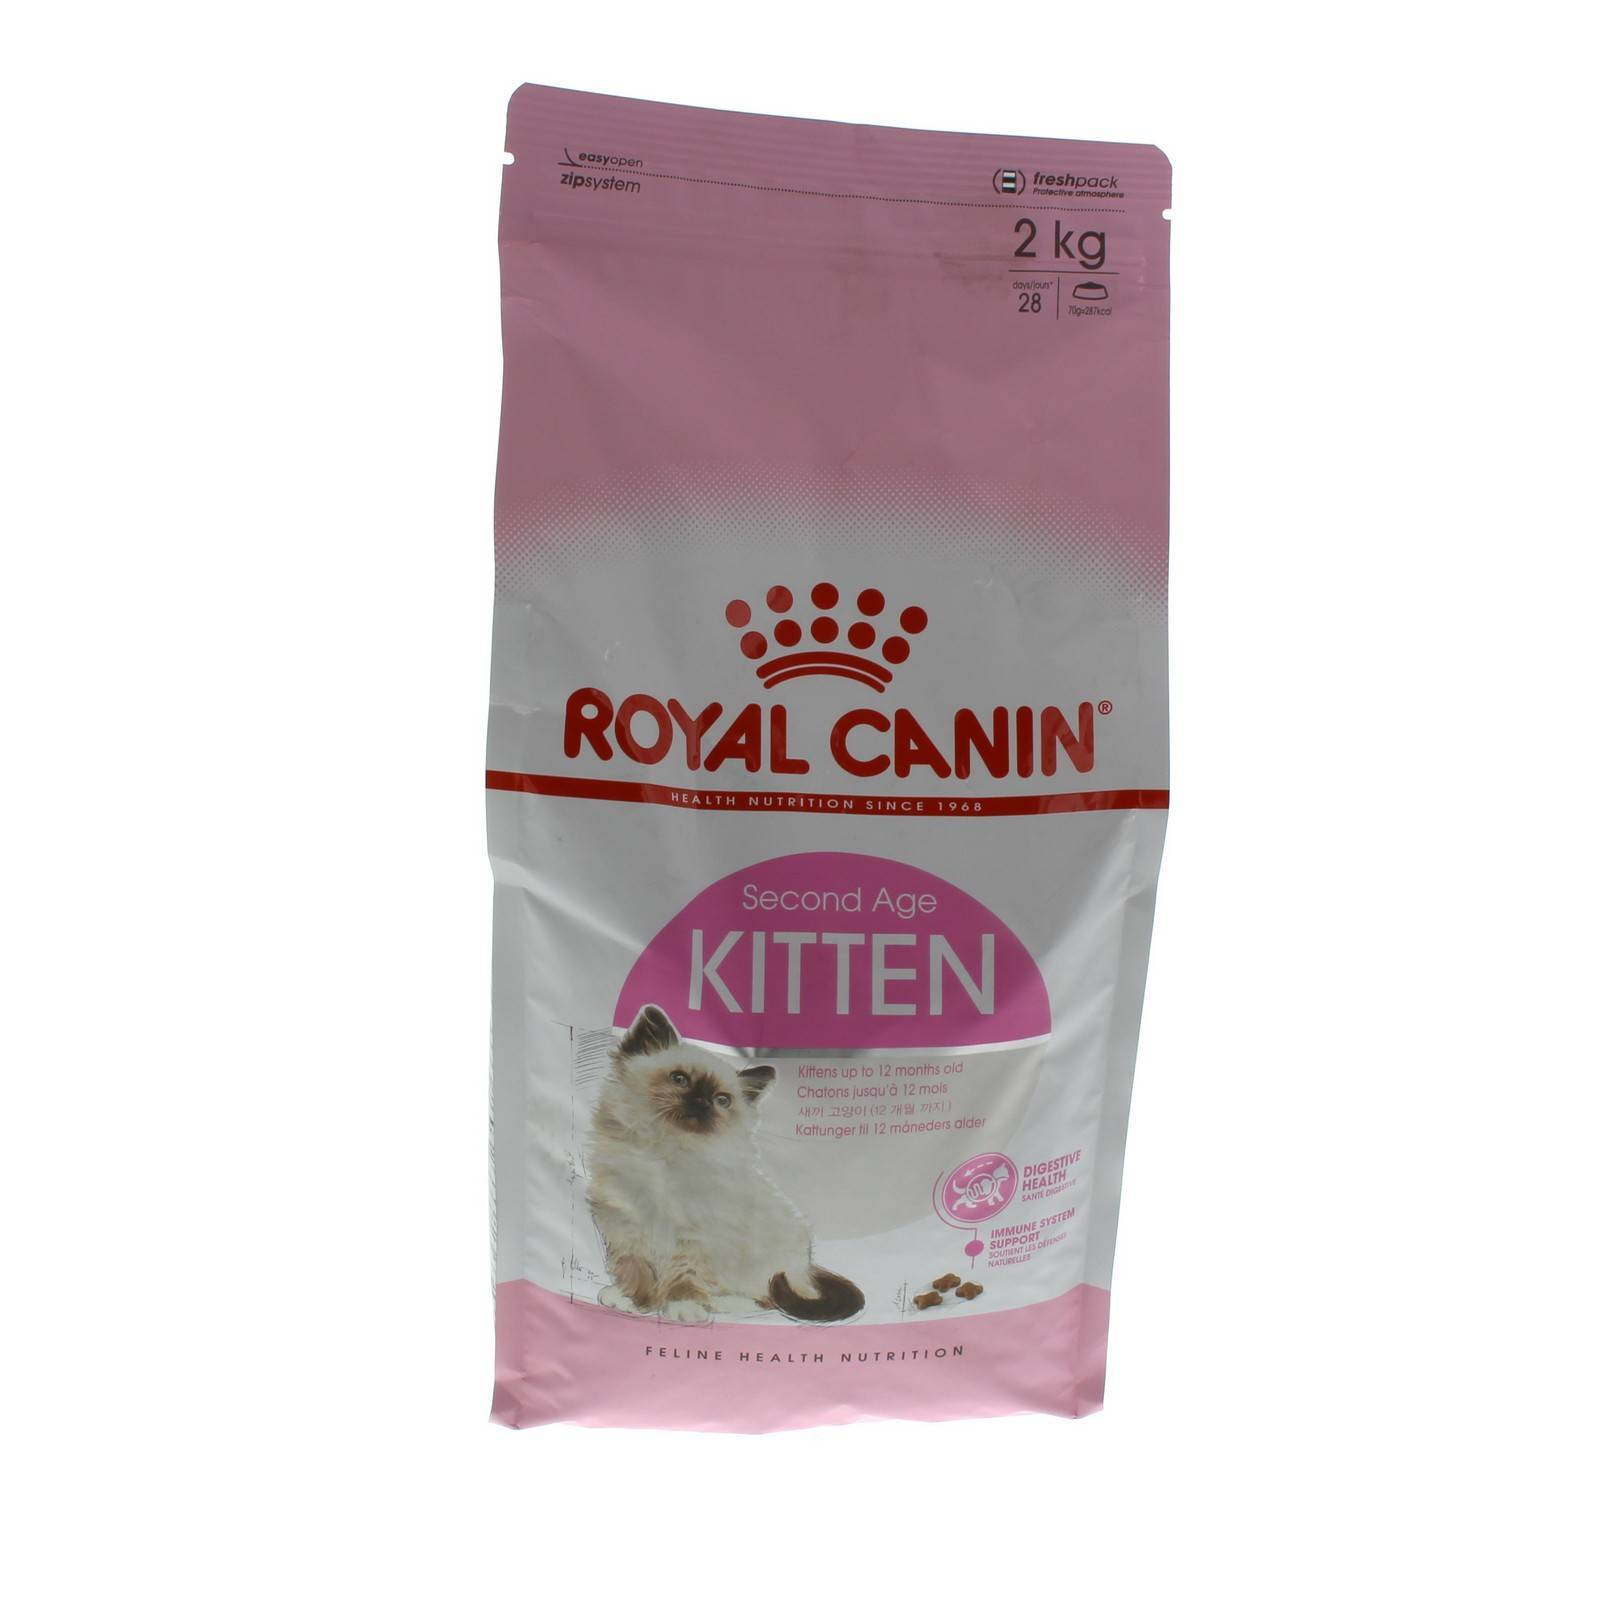 Cat Food Royal Canin Kitten36 2kg Premium Dry Food Specific Diet Nutrition